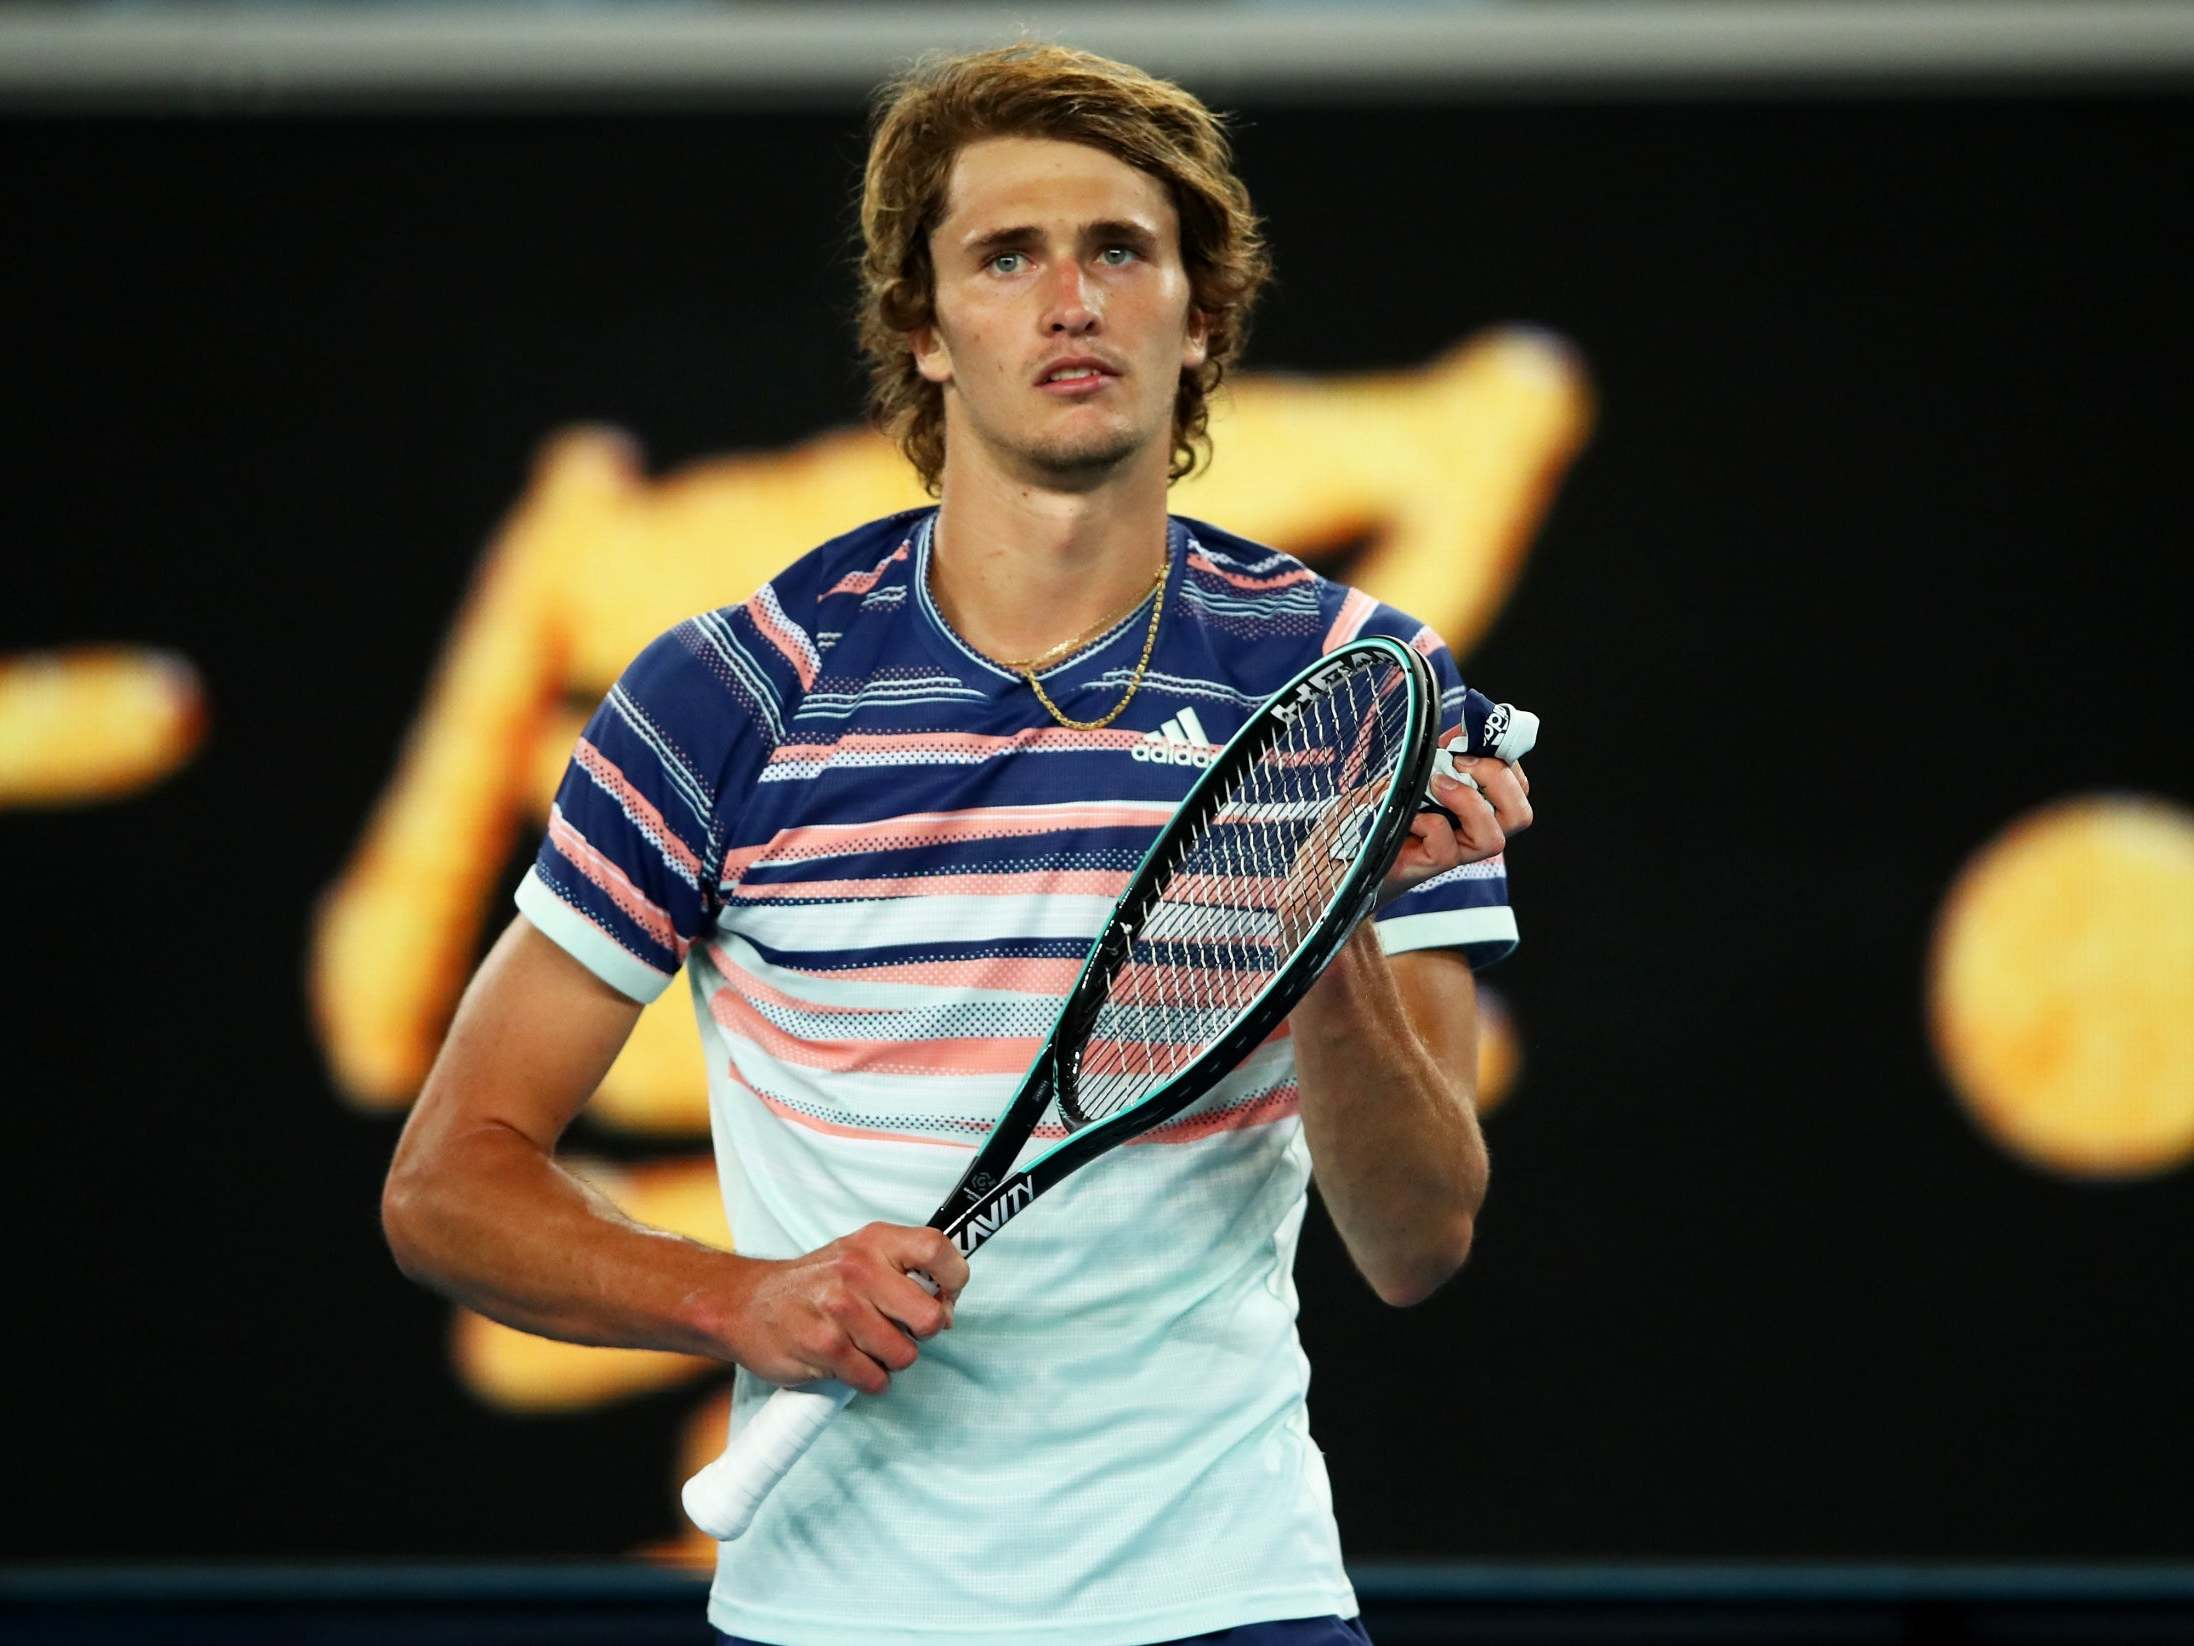 Alexander Zverev vows to donate £2.1m prize money if he wins Australian Open after first-round victory